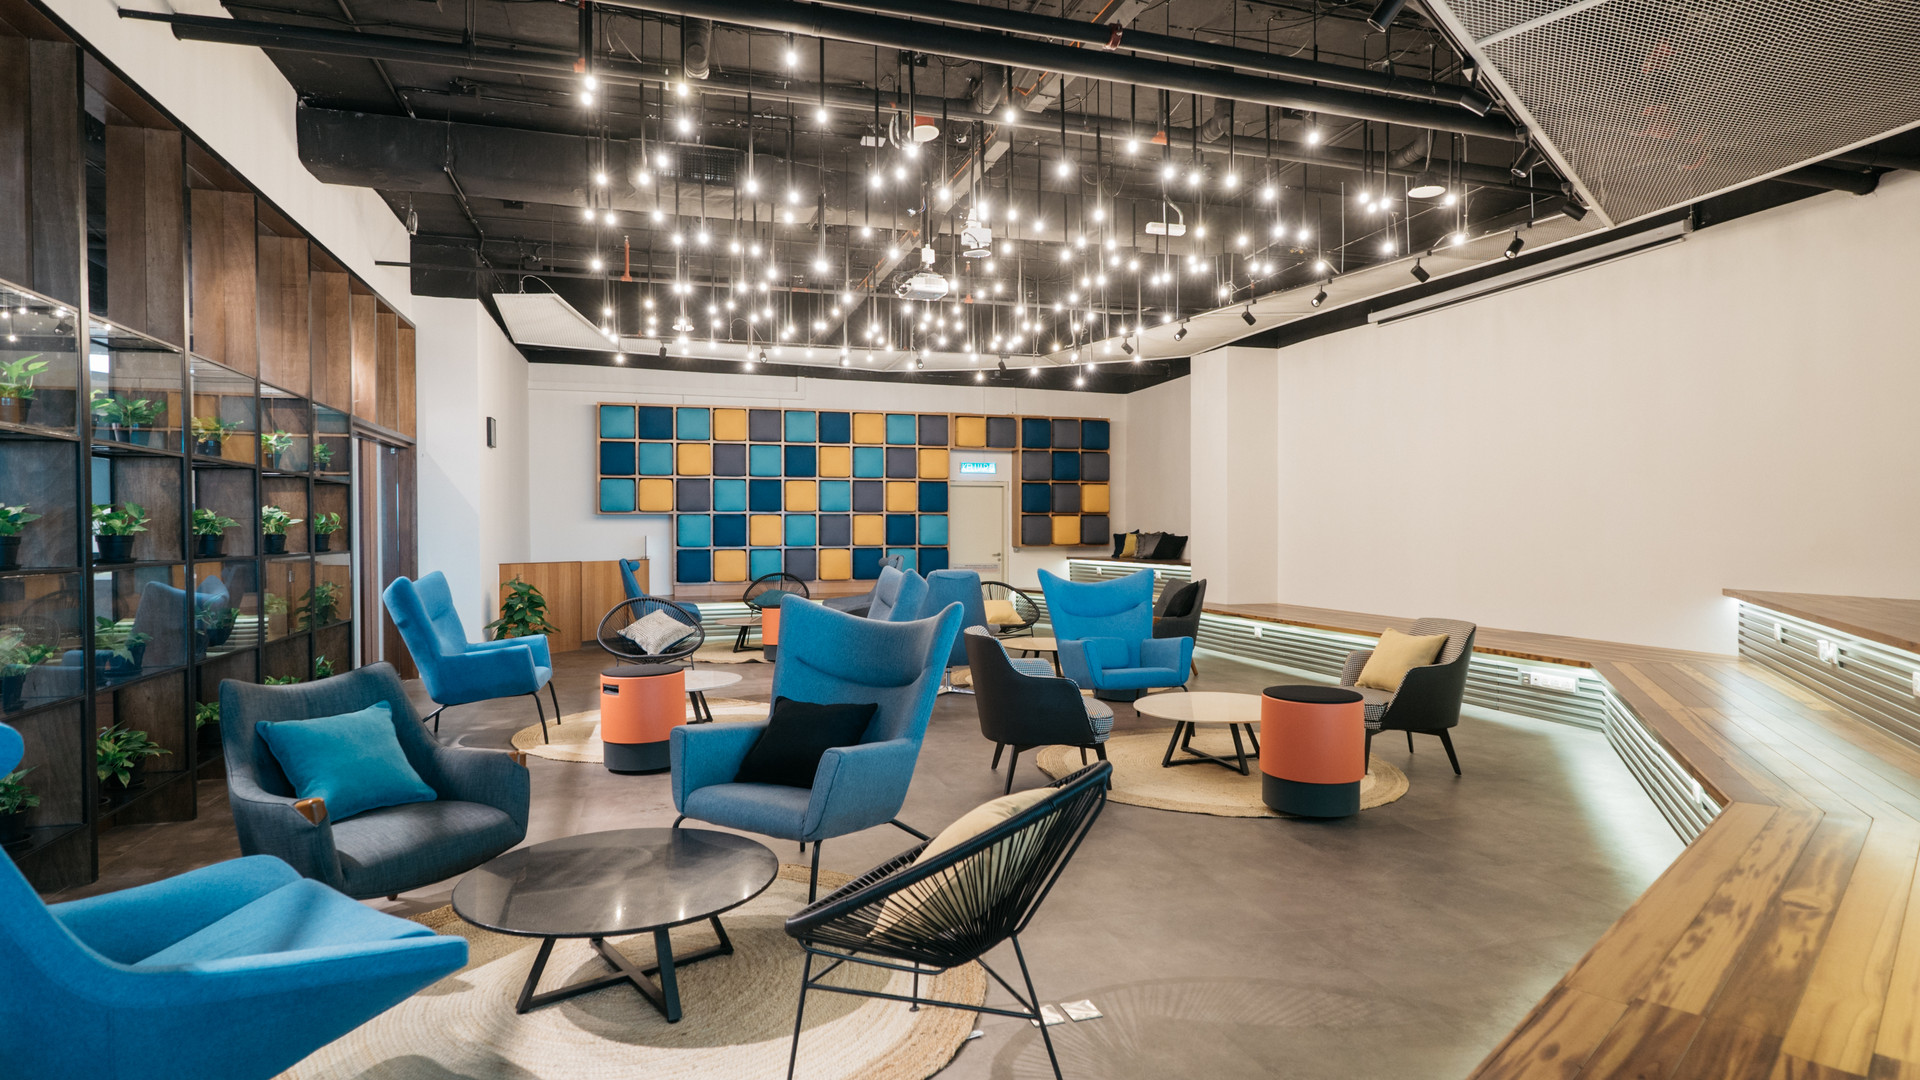 Co-labs Coworking